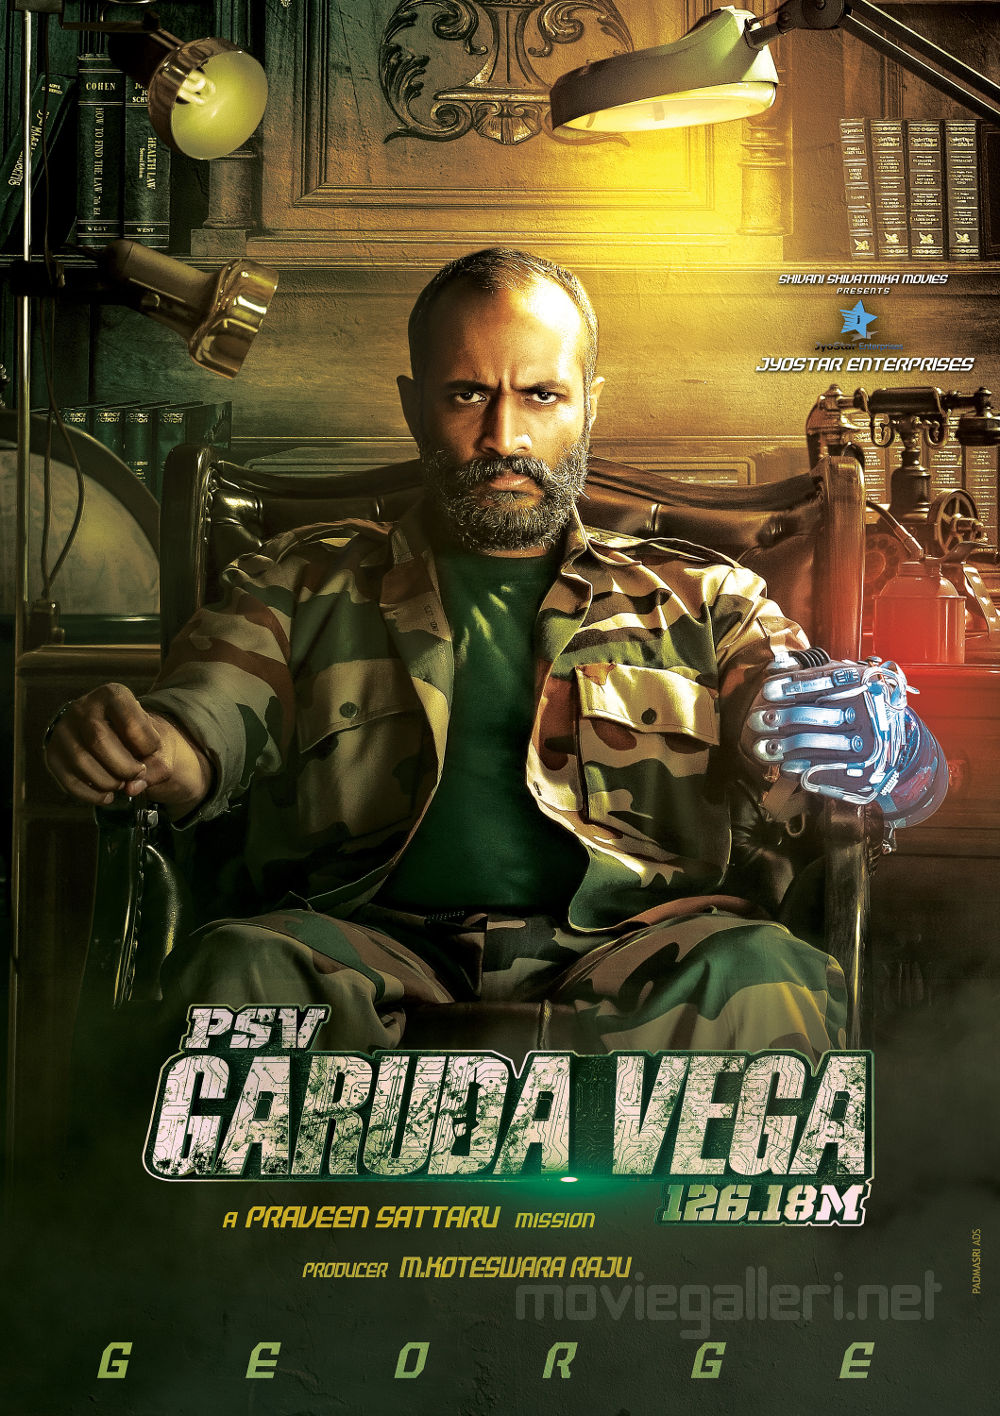 Actor Kishore in PSV Garuda Vega Movie Poster